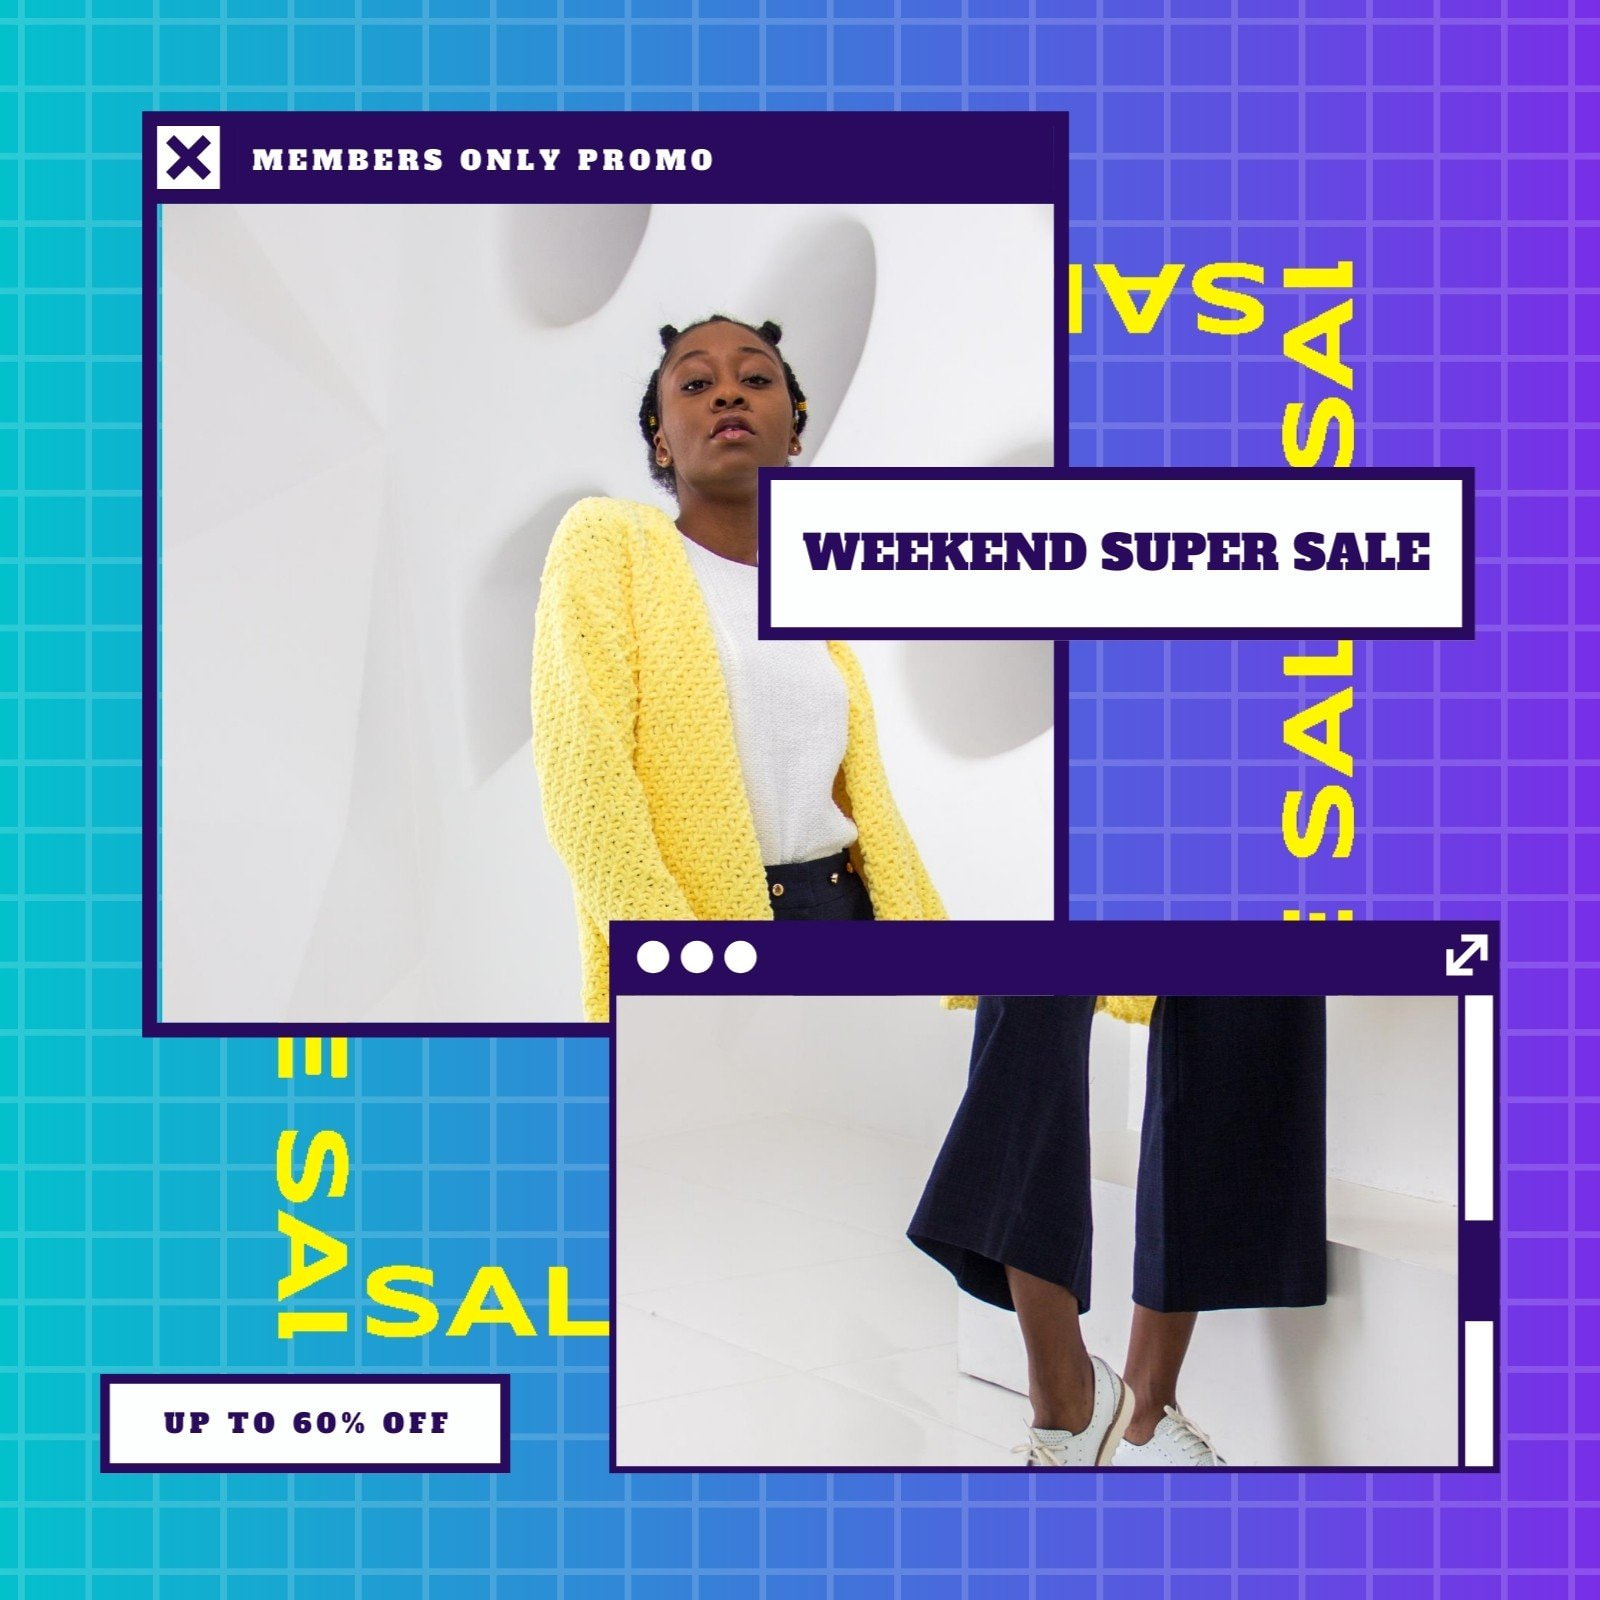 Purple and Yellow Sale Animated Social Media